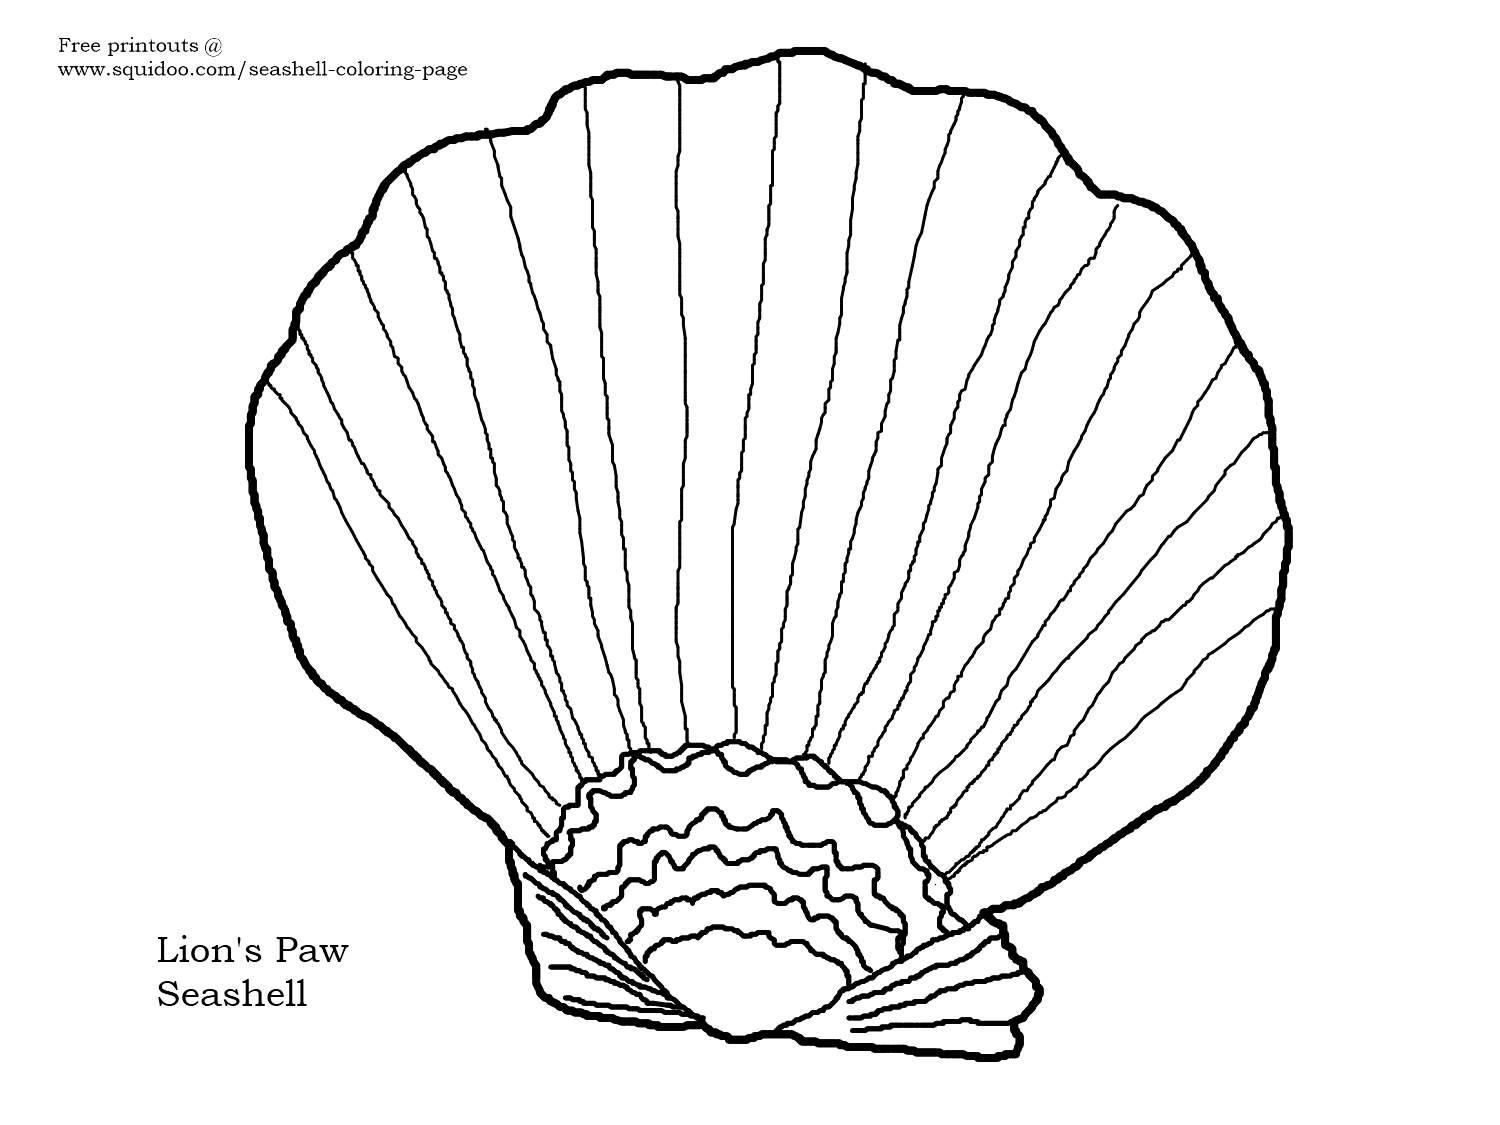 Lion's paw seashell coloring page